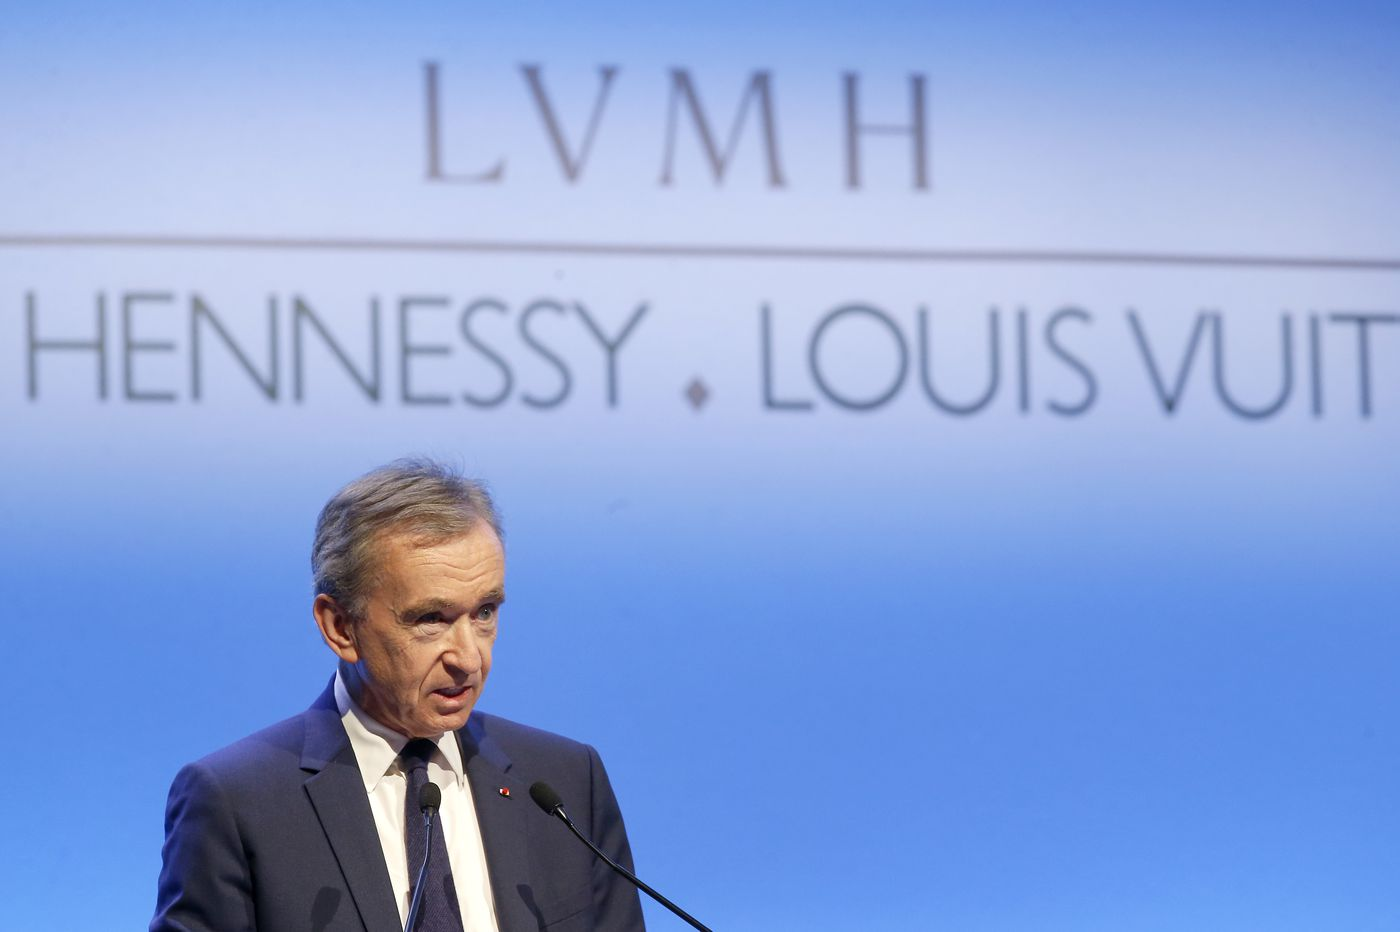 LVMH to buy Tiffany for $16 billion in largest luxury-goods deal ever